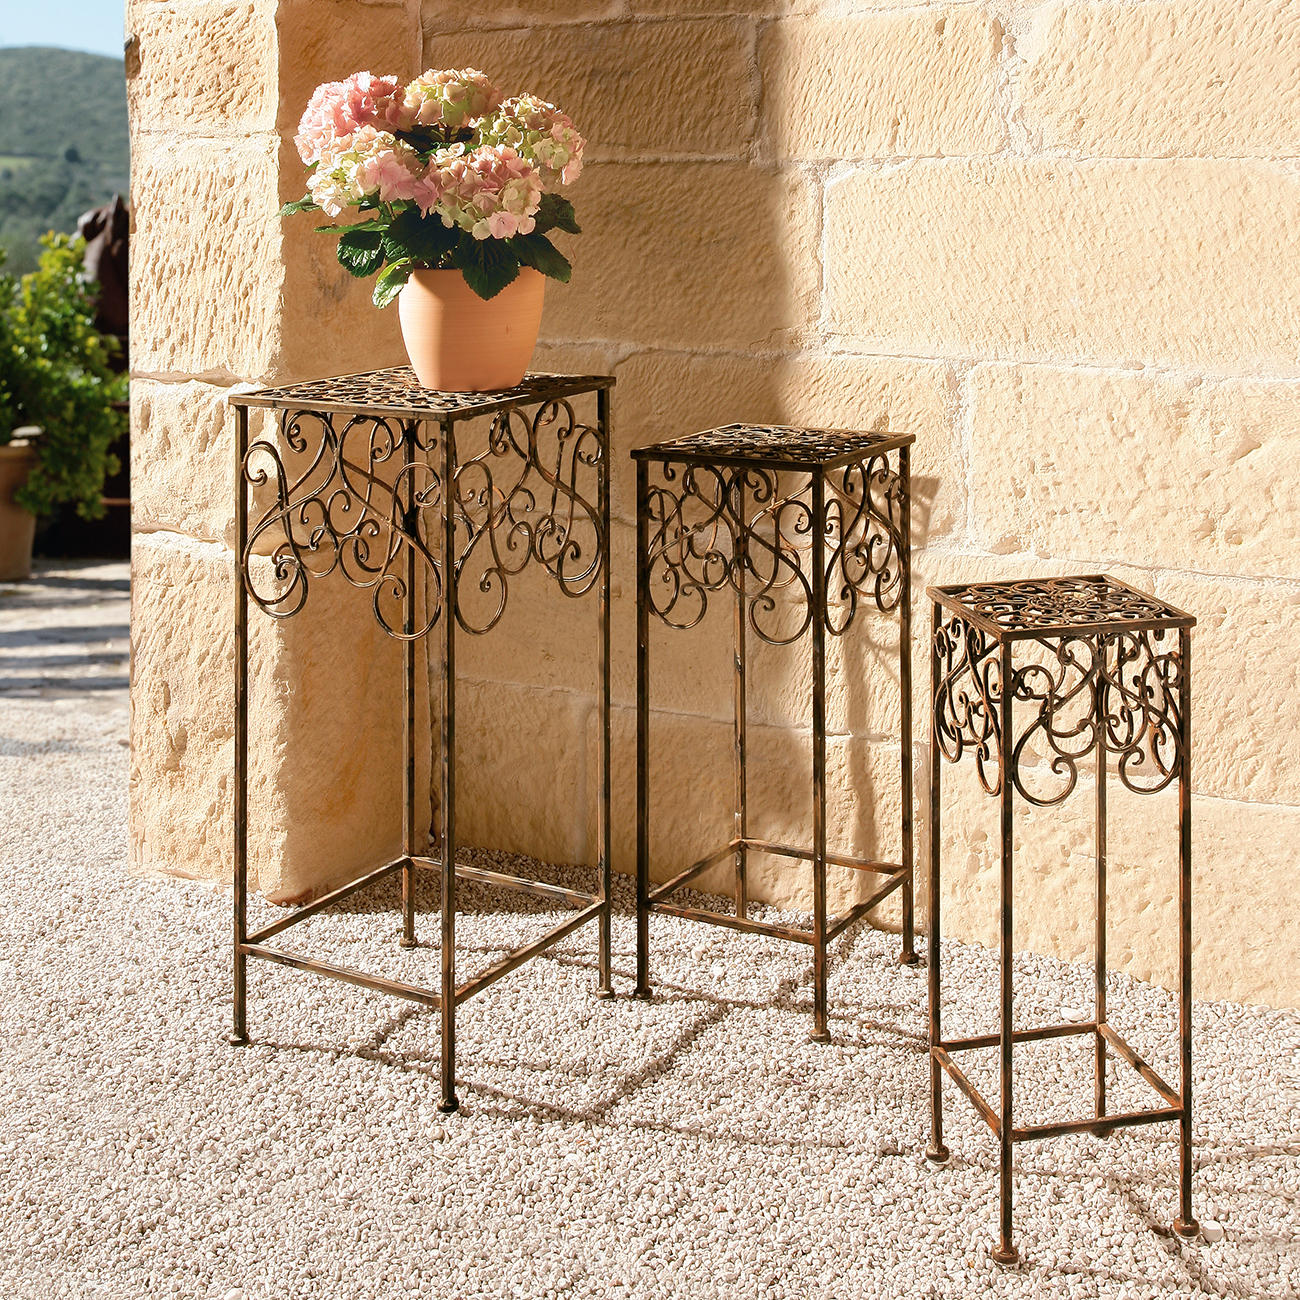 Buy Plant Stands Set Of 3 3 year Product Guarantee